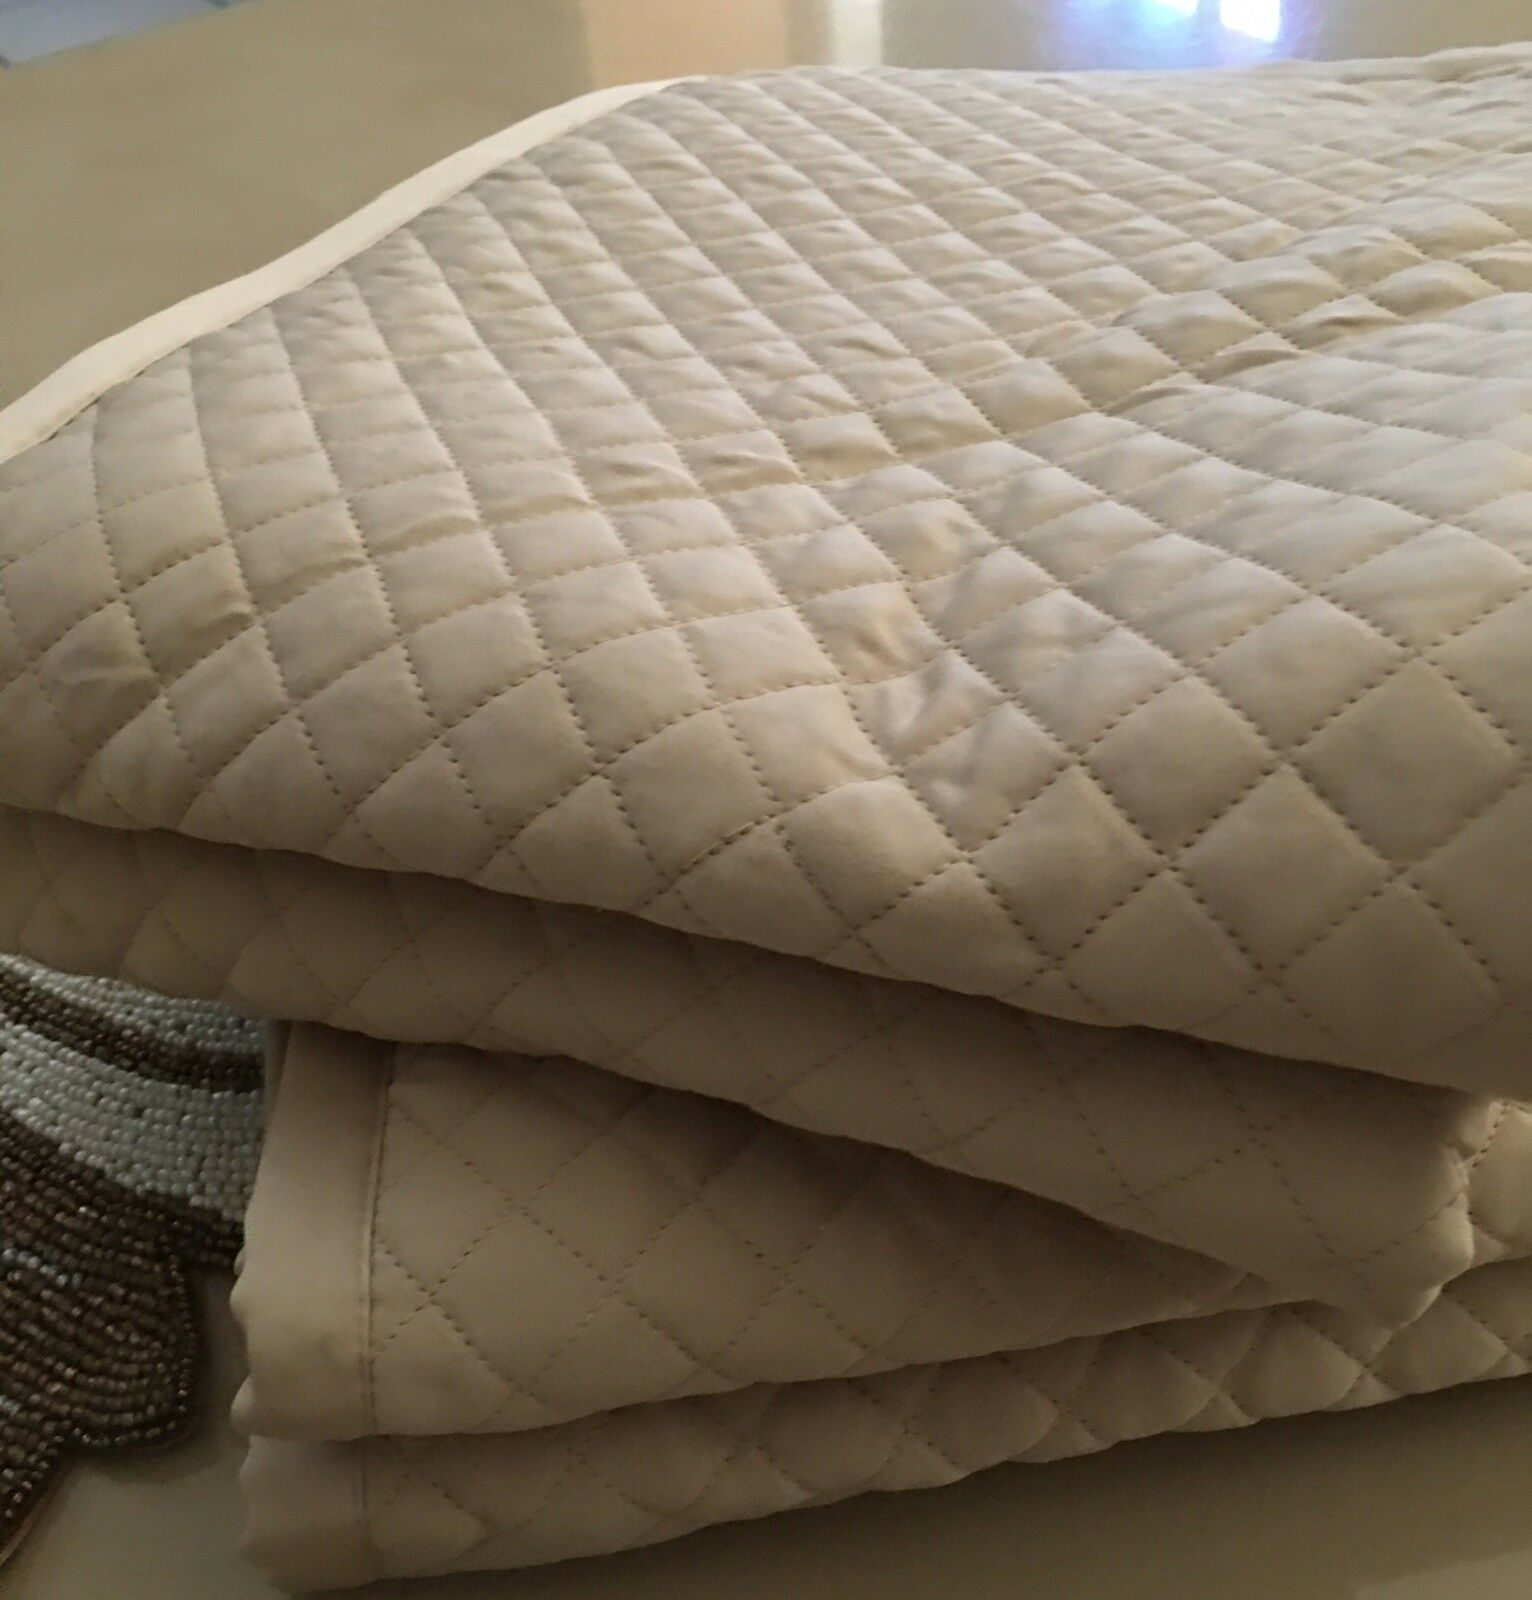 ANN GISH FOR YOU DIAMOND QUILTED TAN STANDARD PILLOW SHAMS BNWOP